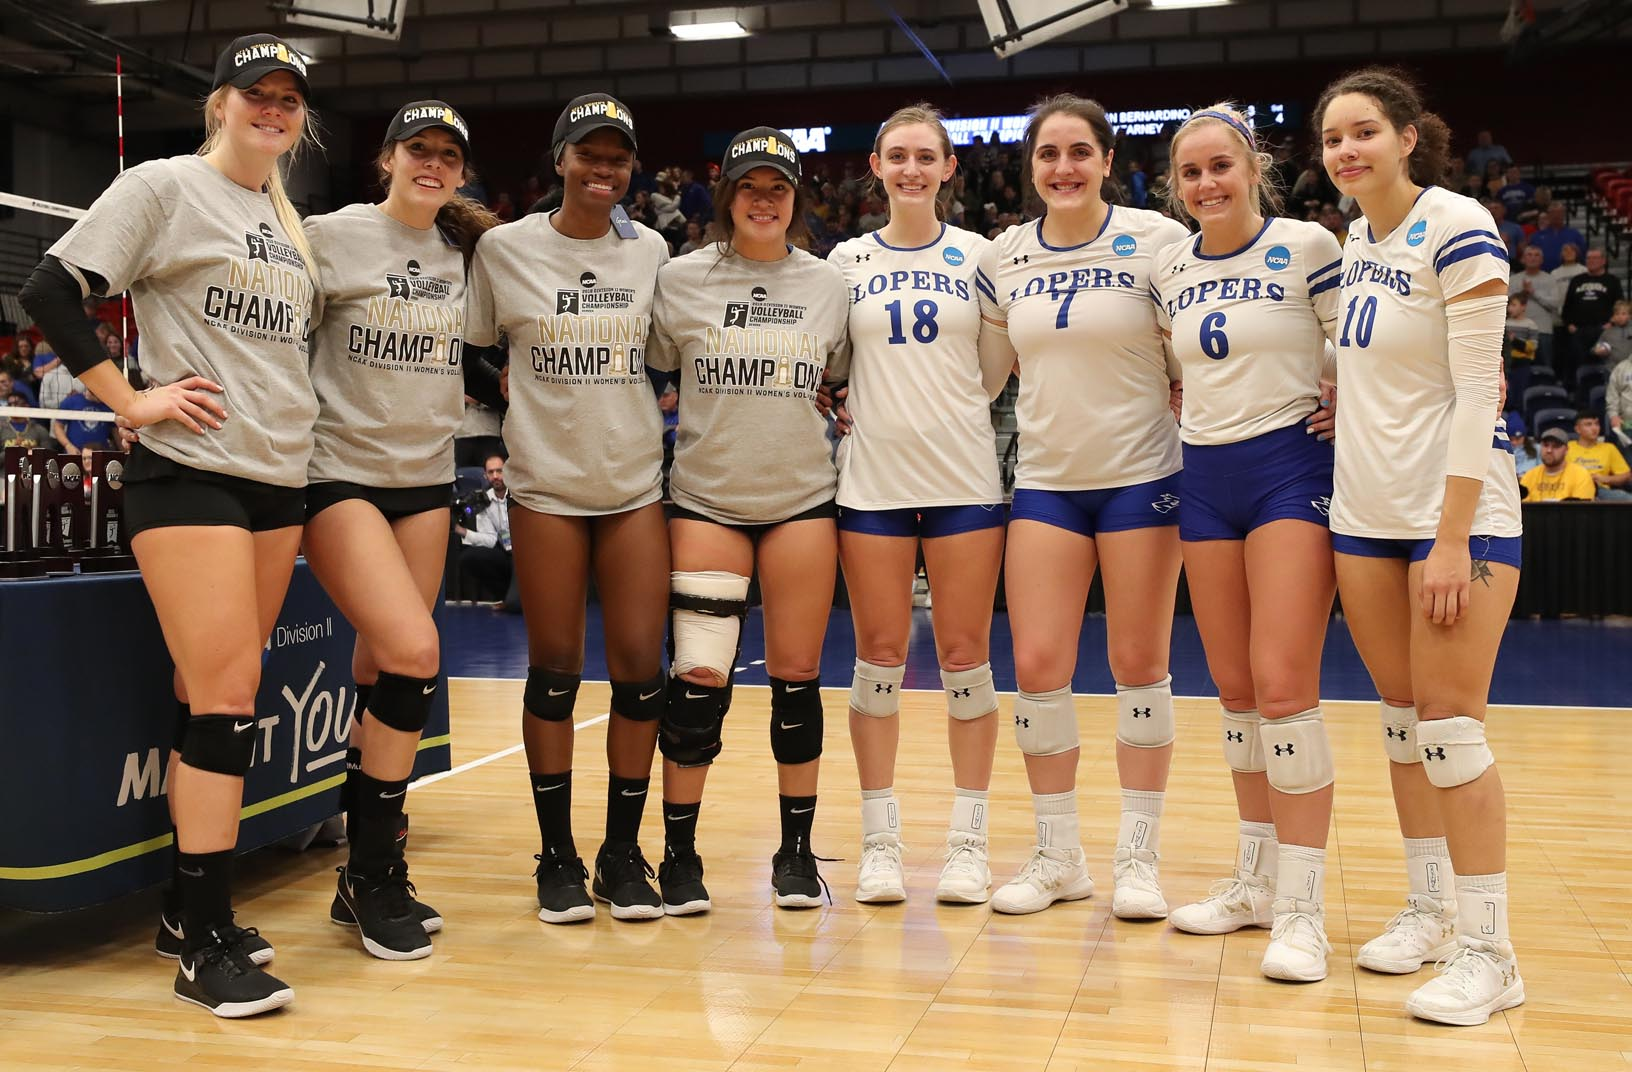 Joined by players from Cal State San Bernardino, UNK's Mary Katherine Wolfe (18), Anna Squiers (7), Maddie Squiers (6) and Julianne Jackson (10) are recognized as all-tournament selections Saturday following the NCAA Division II championship match at the Auraria Event Center in Denver.